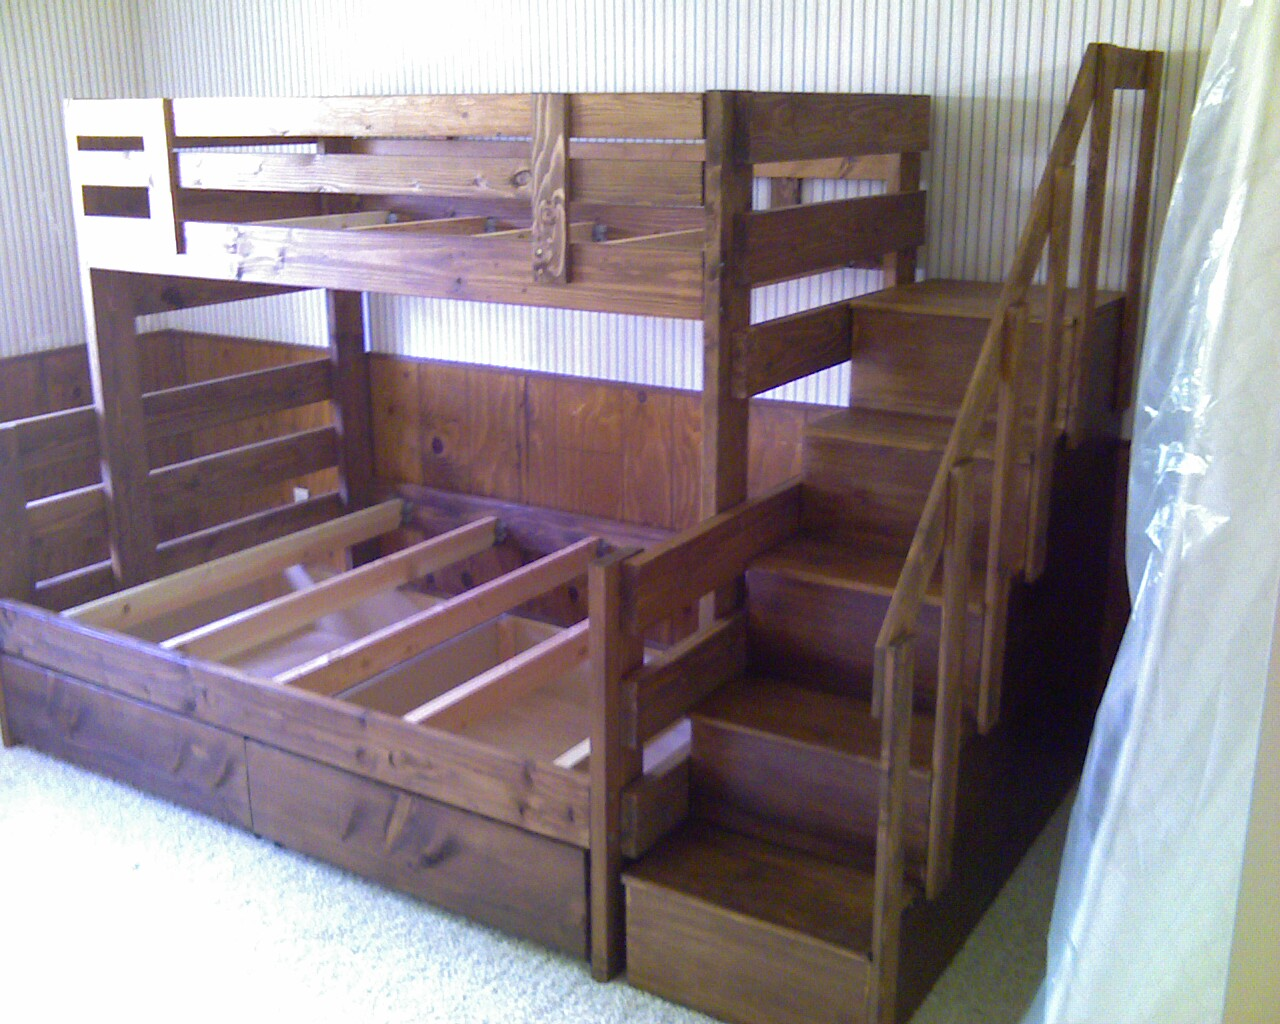 Building A Bunk Bed With Stairs Bunk Beds Diy Bunk Beds With Stairs Diy Bunk Beds For